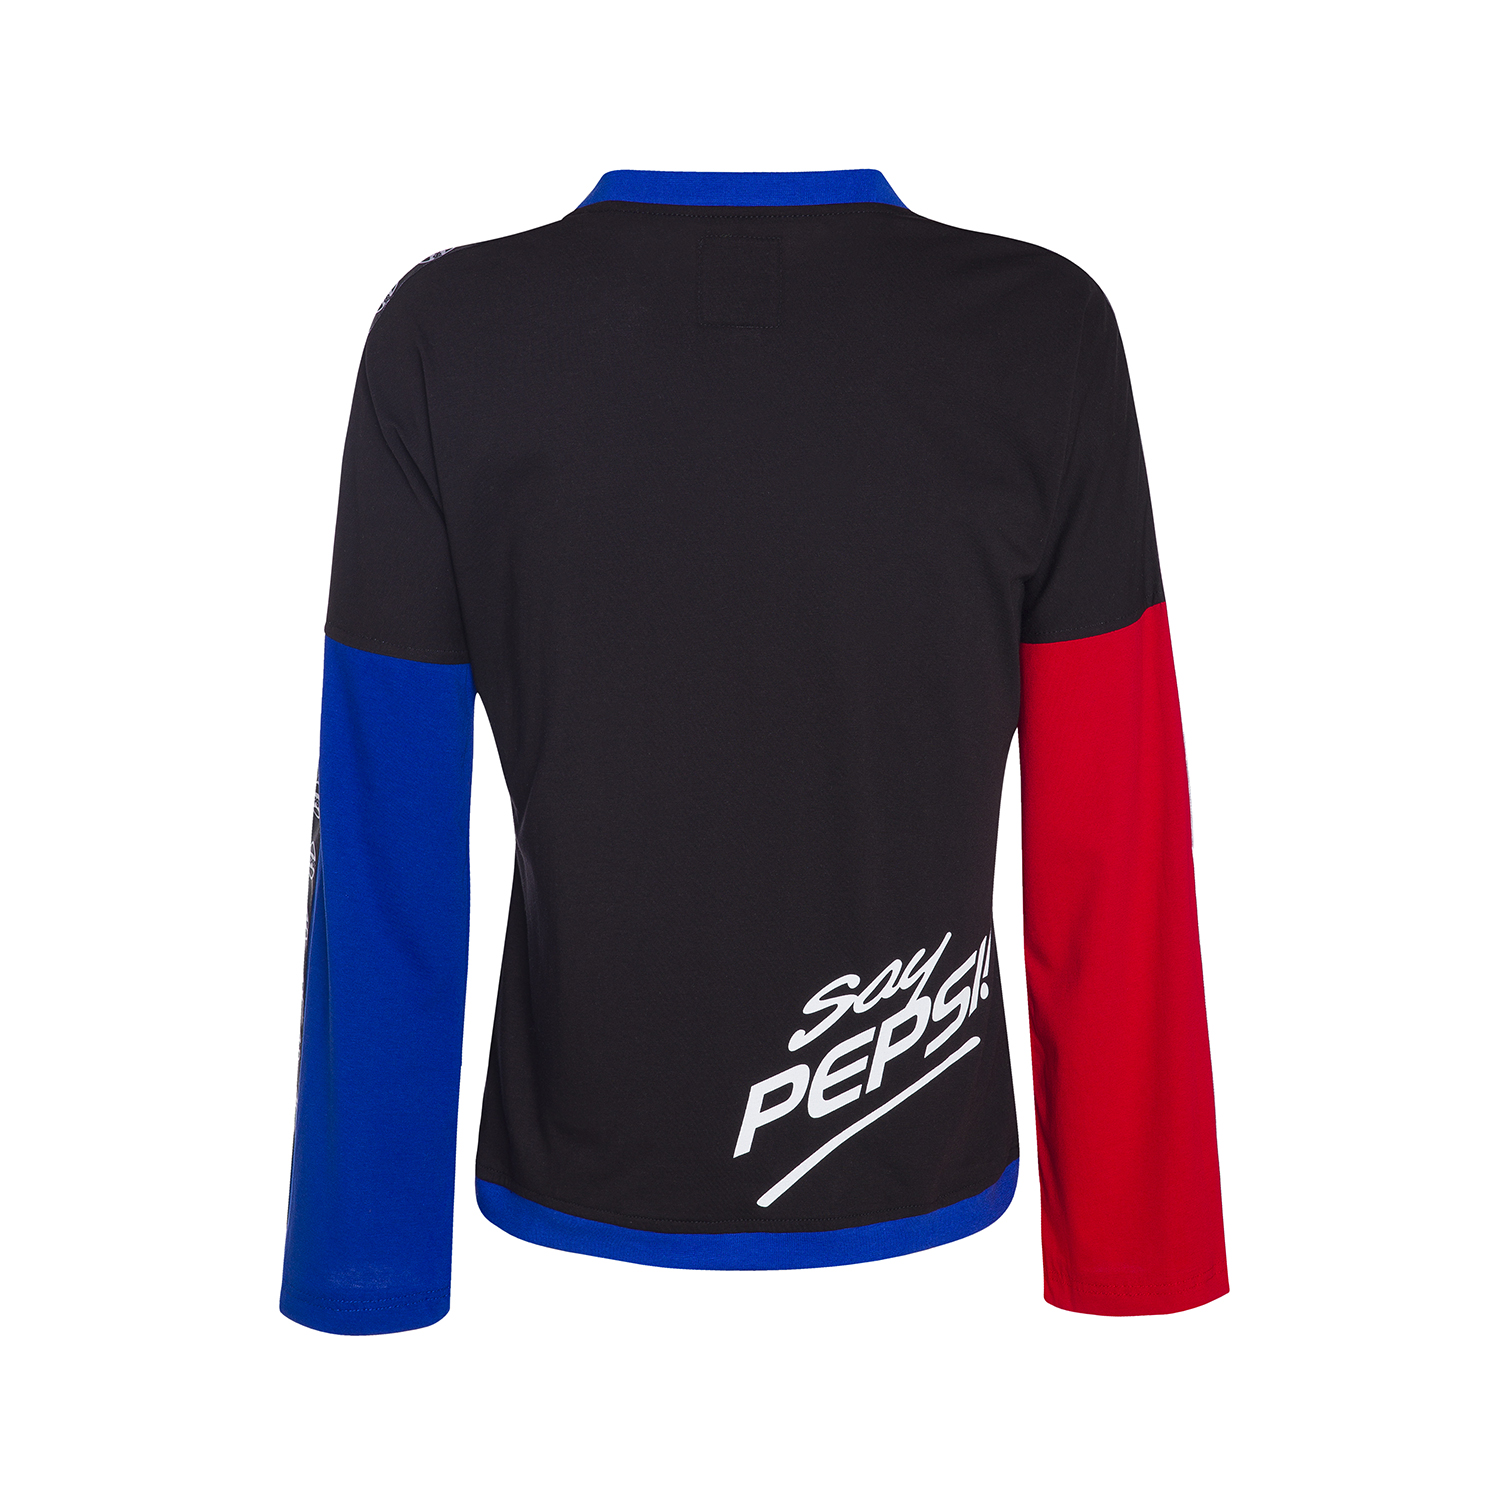 GENERATIONEXT LONG SLEEVED T-SHIRT